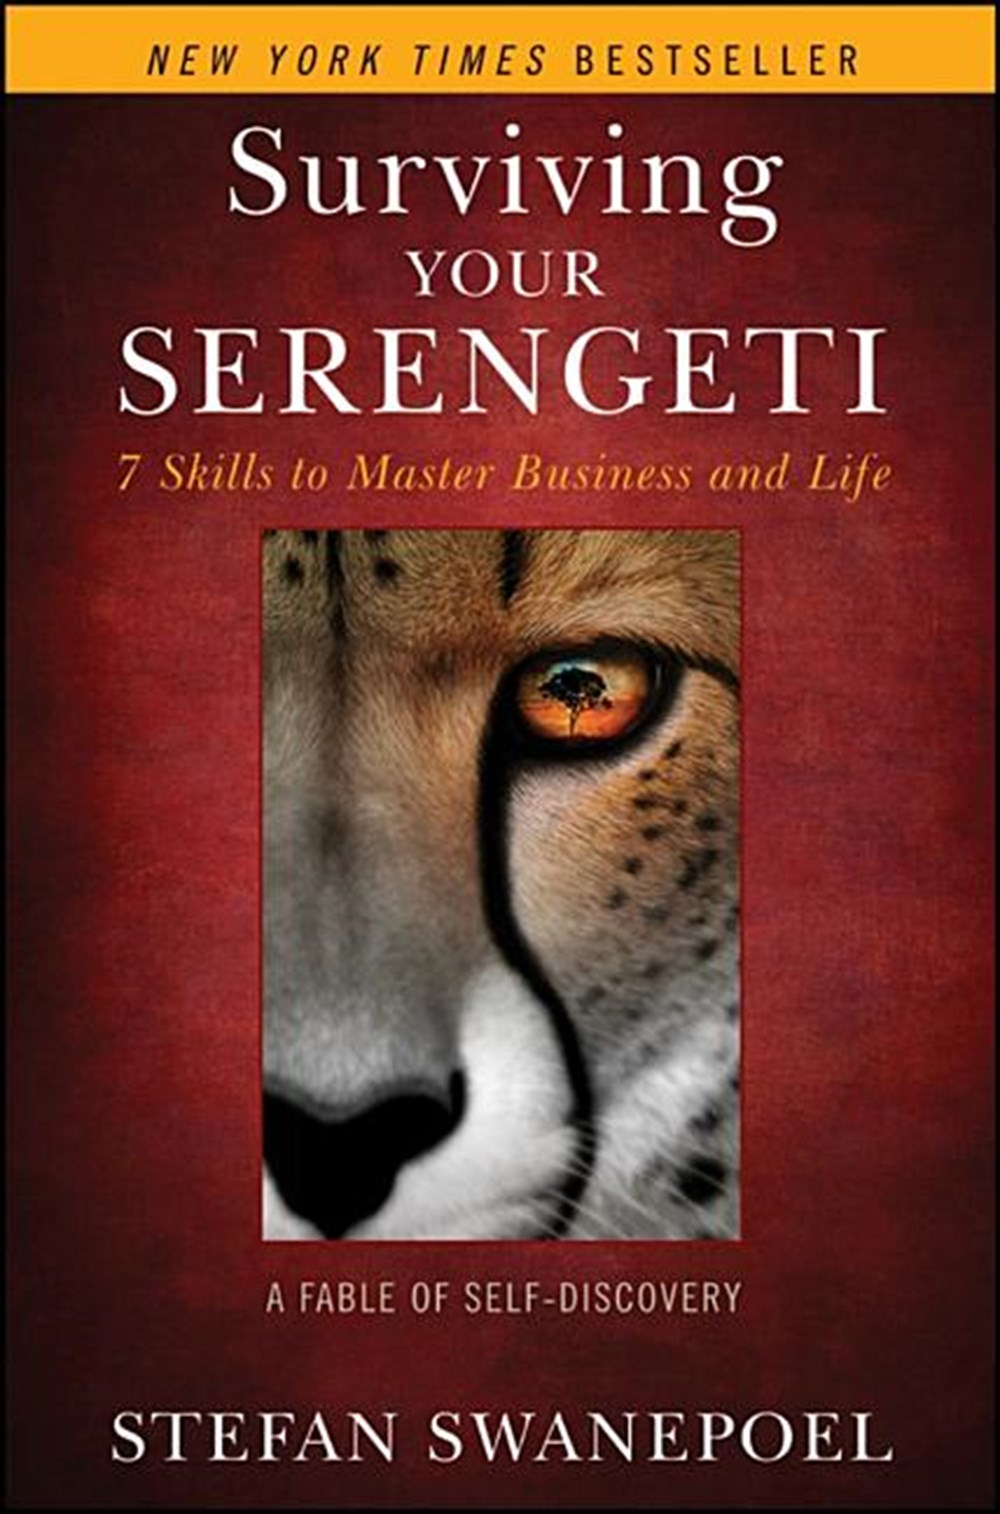 Surviving Your Serengeti 7 Skills to Master Business and Life: A Fable of Self-Discovery